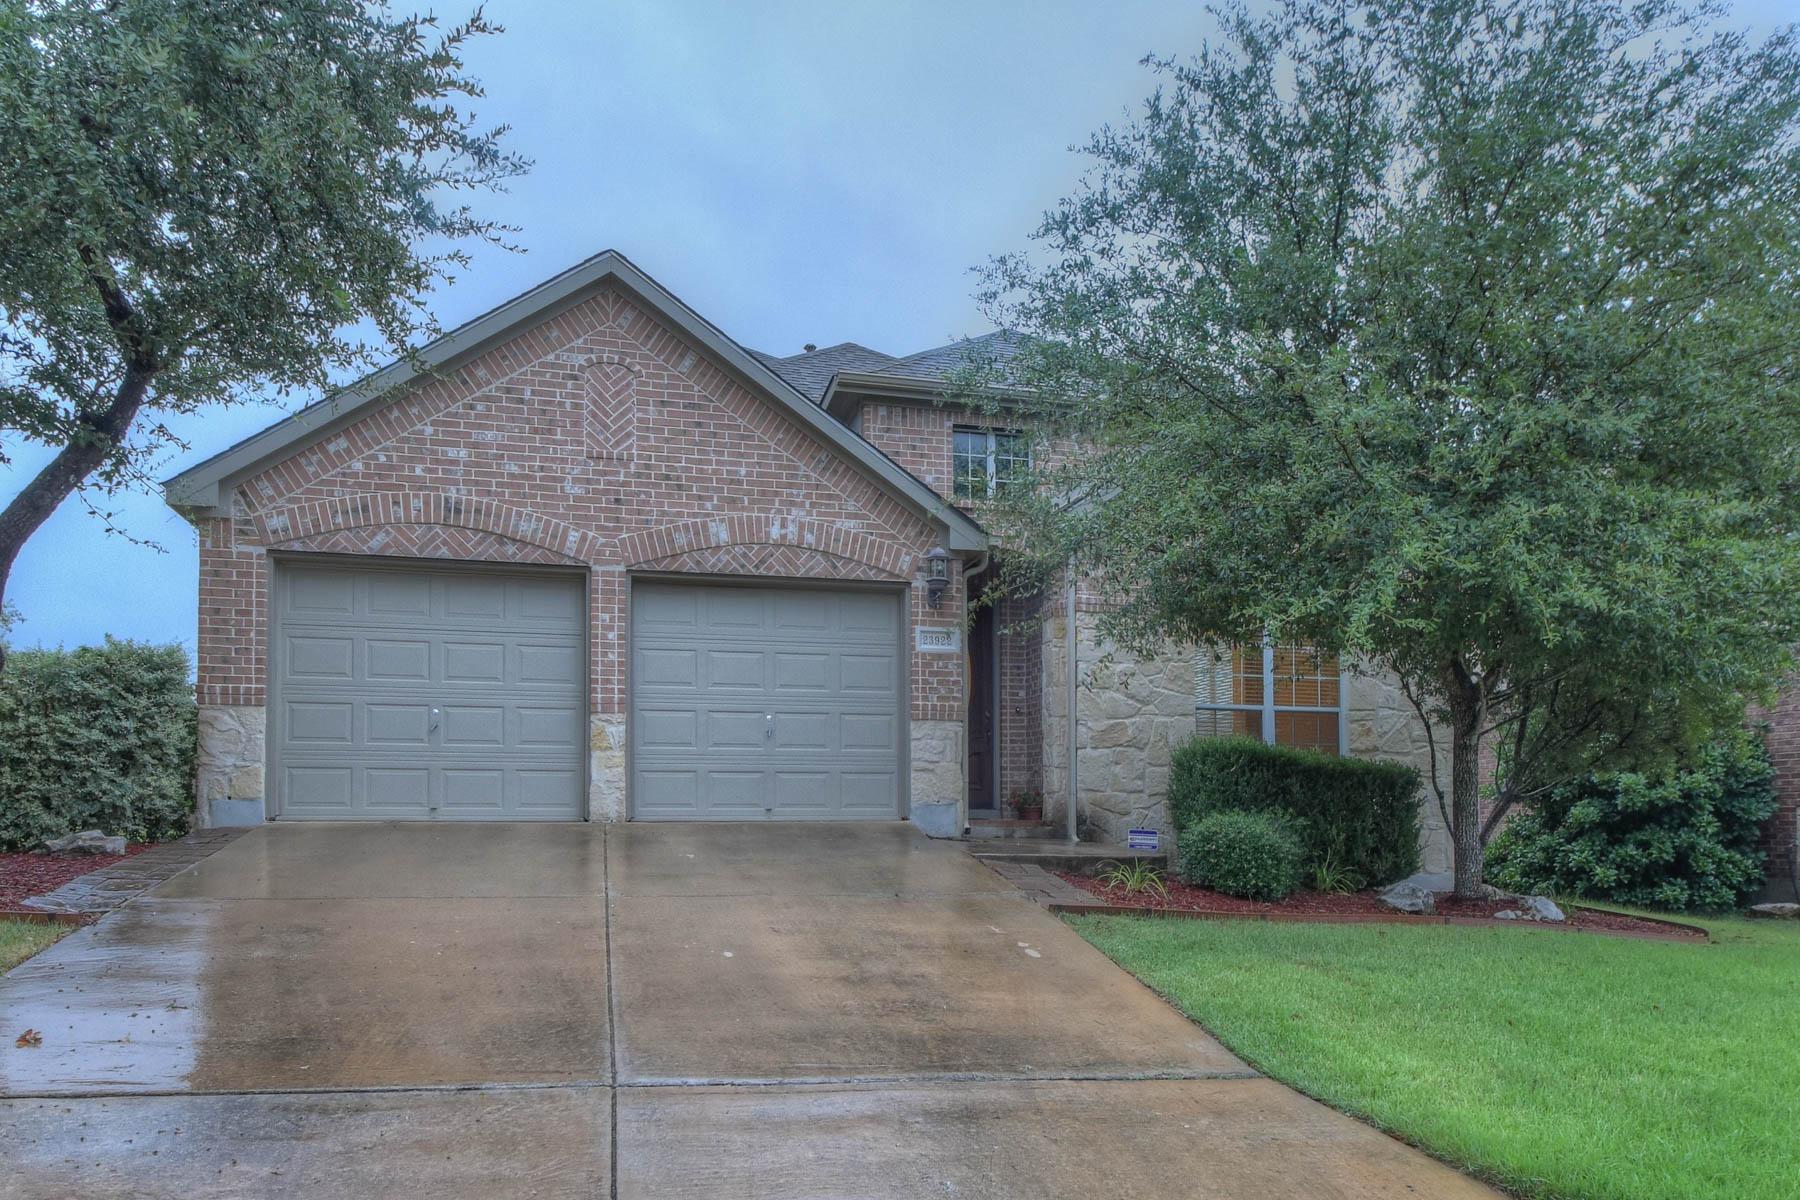 Single Family Home for Sale at Captivating Home in Cibolo Canyons Ventana 23922 Western Meadow San Antonio, Texas 78261 United States